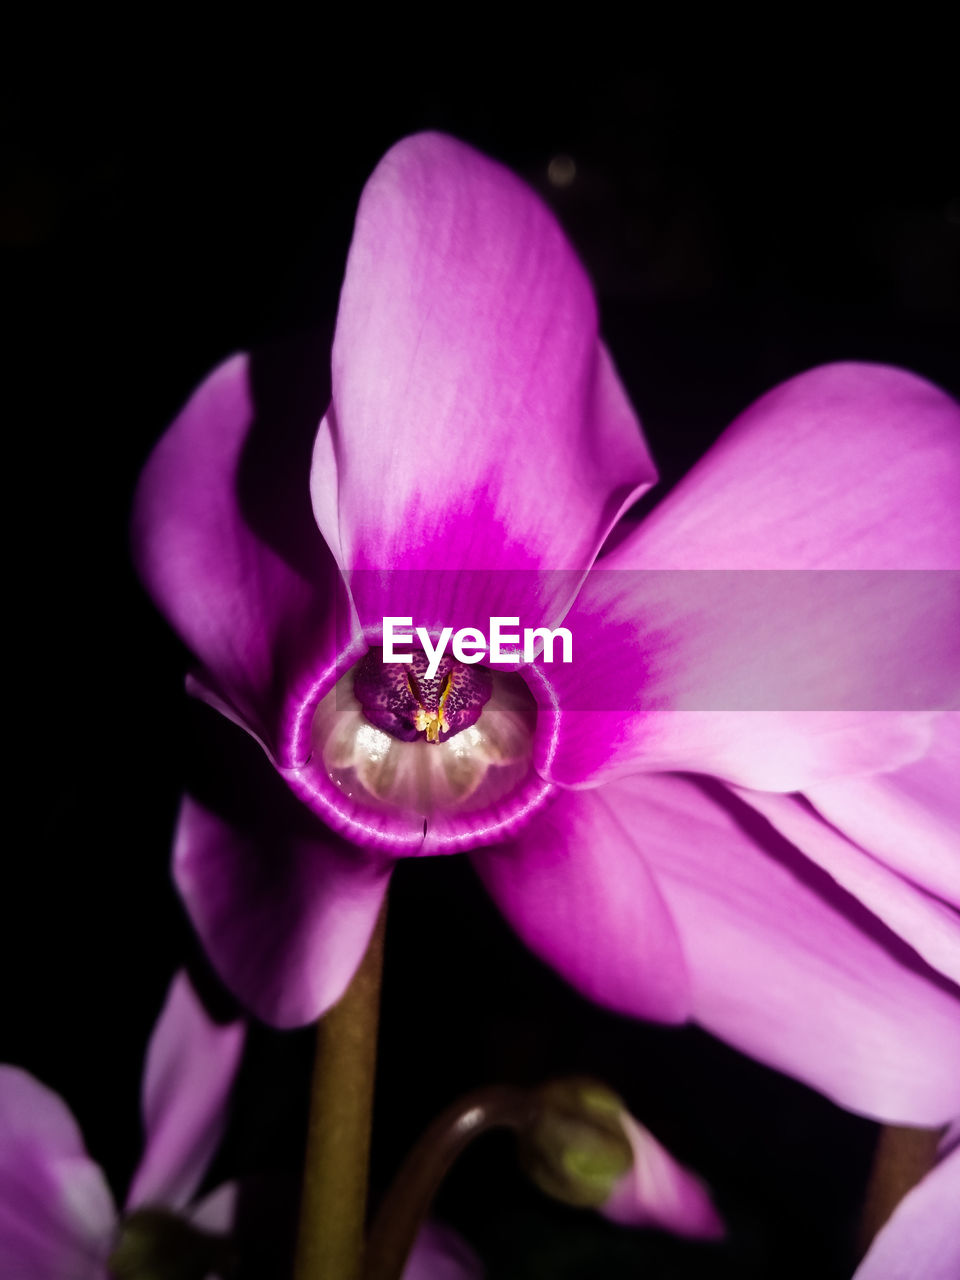 flower, petal, pink color, fragility, flower head, beauty in nature, purple, freshness, growth, nature, close-up, no people, plant, night, outdoors, black background